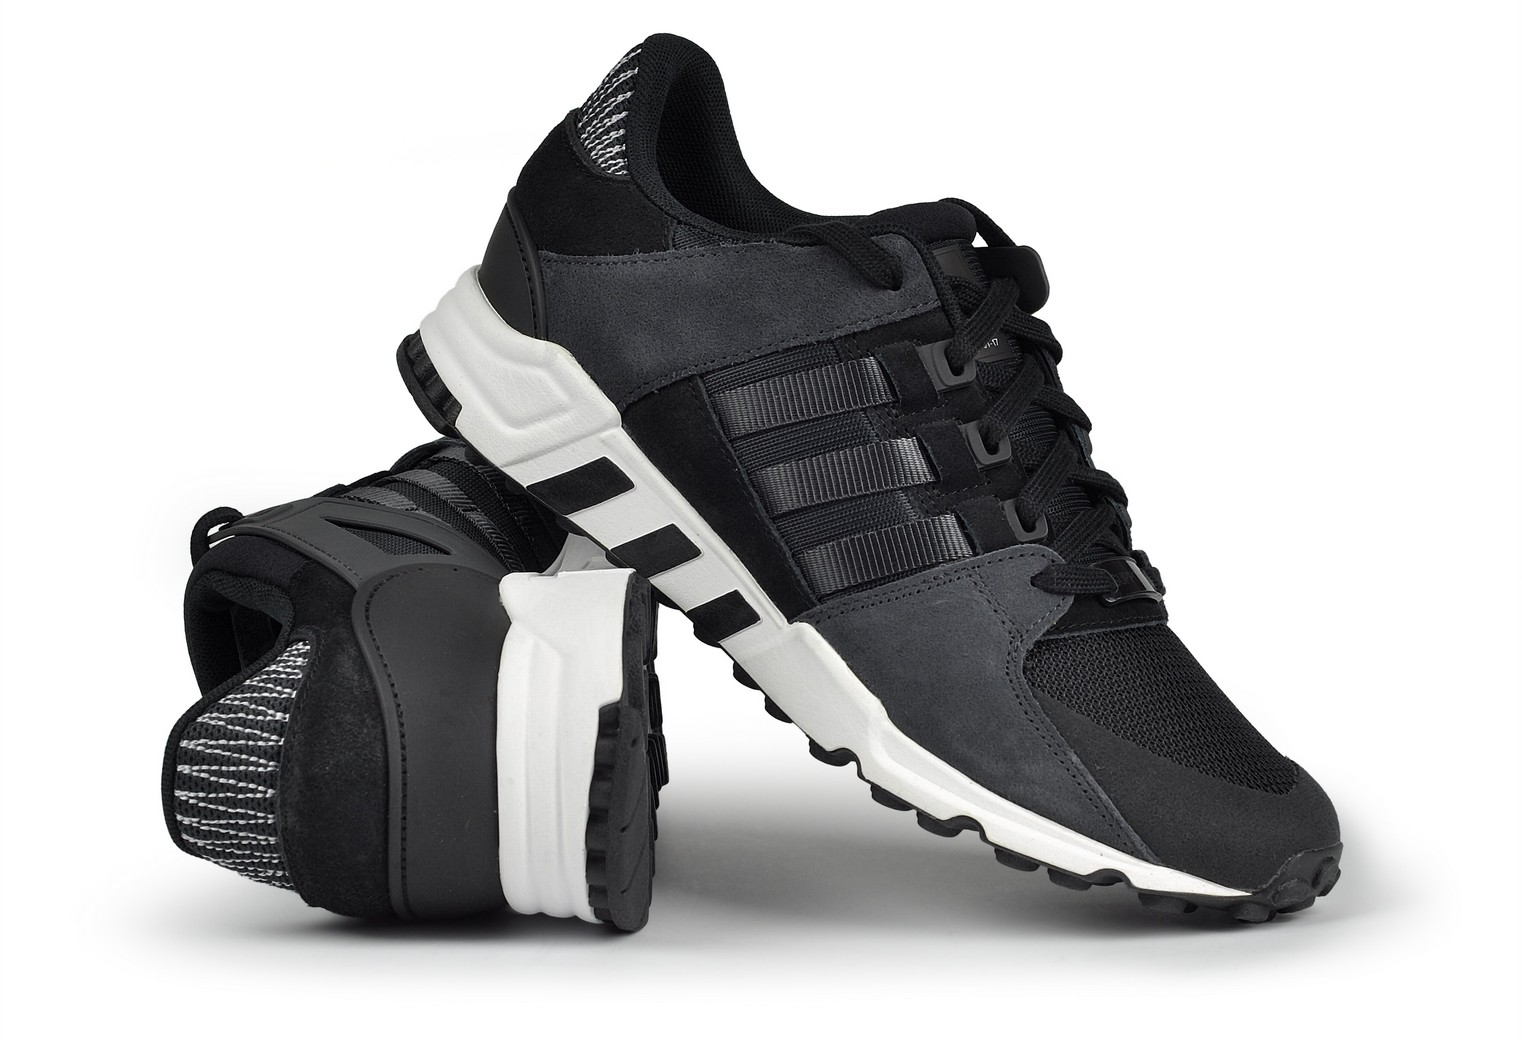 los angeles 899a5 24213 ... ADIDAS EQT EQUIPMENT SUPPORT RF CQ2419 BUTY MĘSKIE. ADIDAS EQUIPMENT  SUPPORT RF